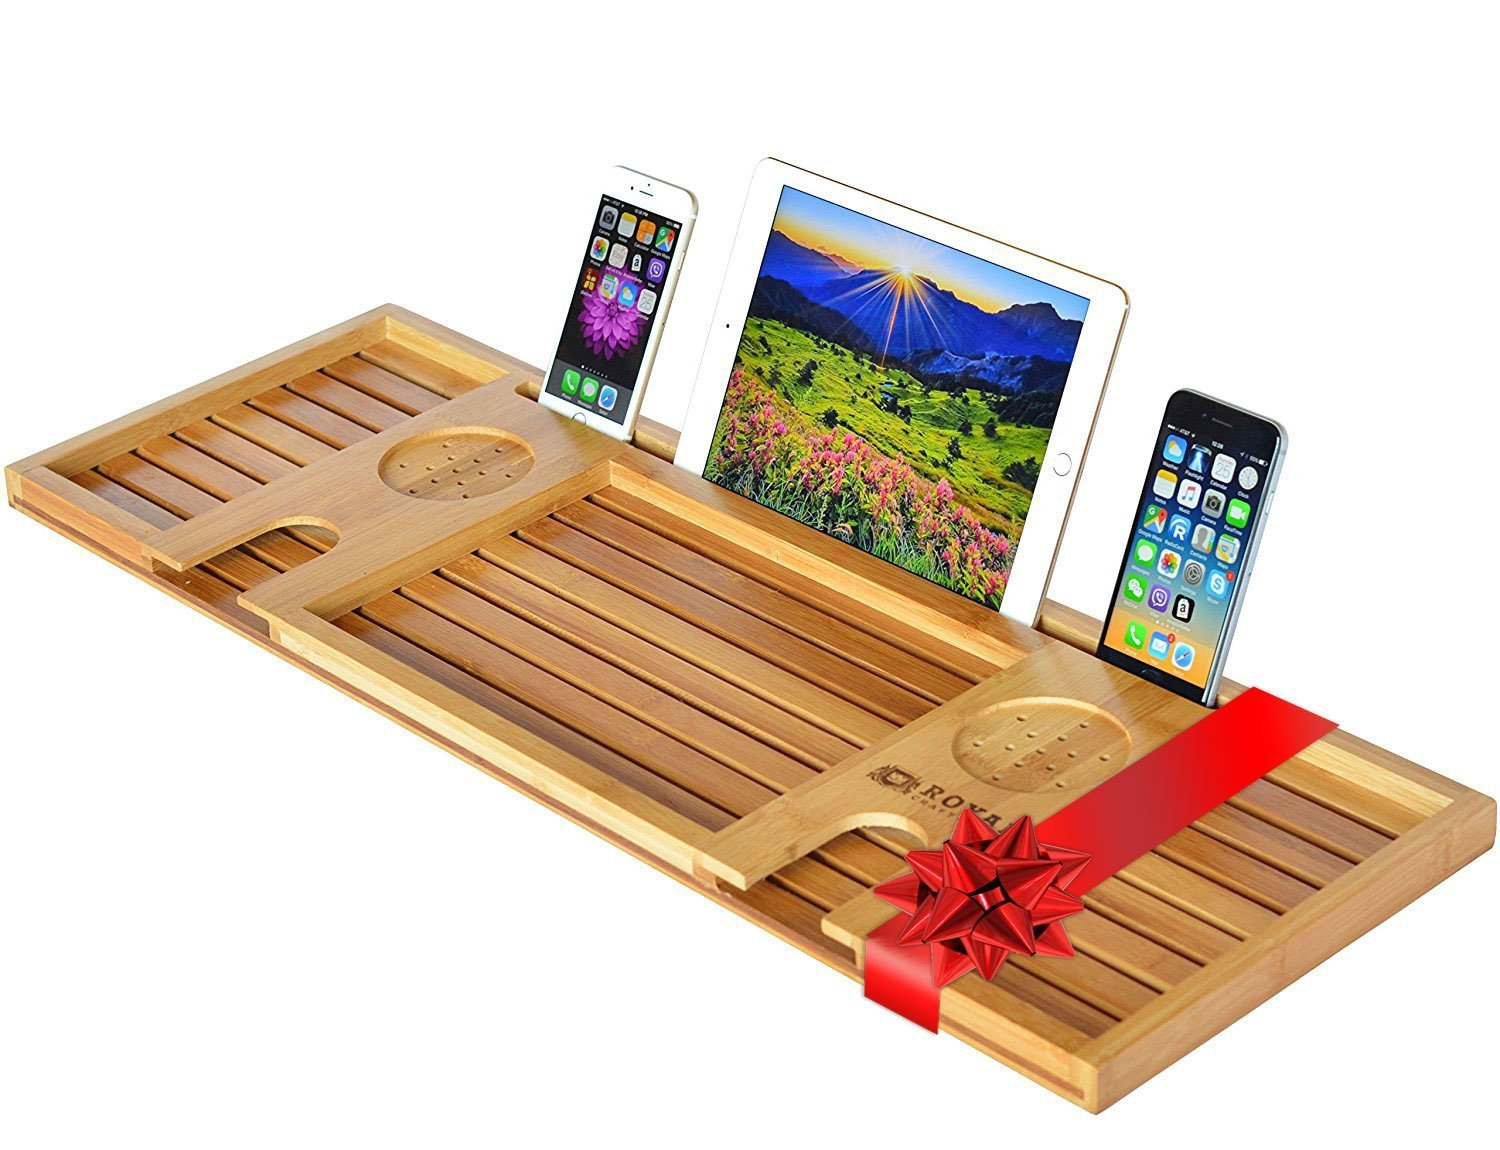 Royal Craft Wood Natural Bamboo Bathtub Caddy/Bath Serving Tray for 2: Him and Her - Luxury Bathtub Accessories Set RCW-02